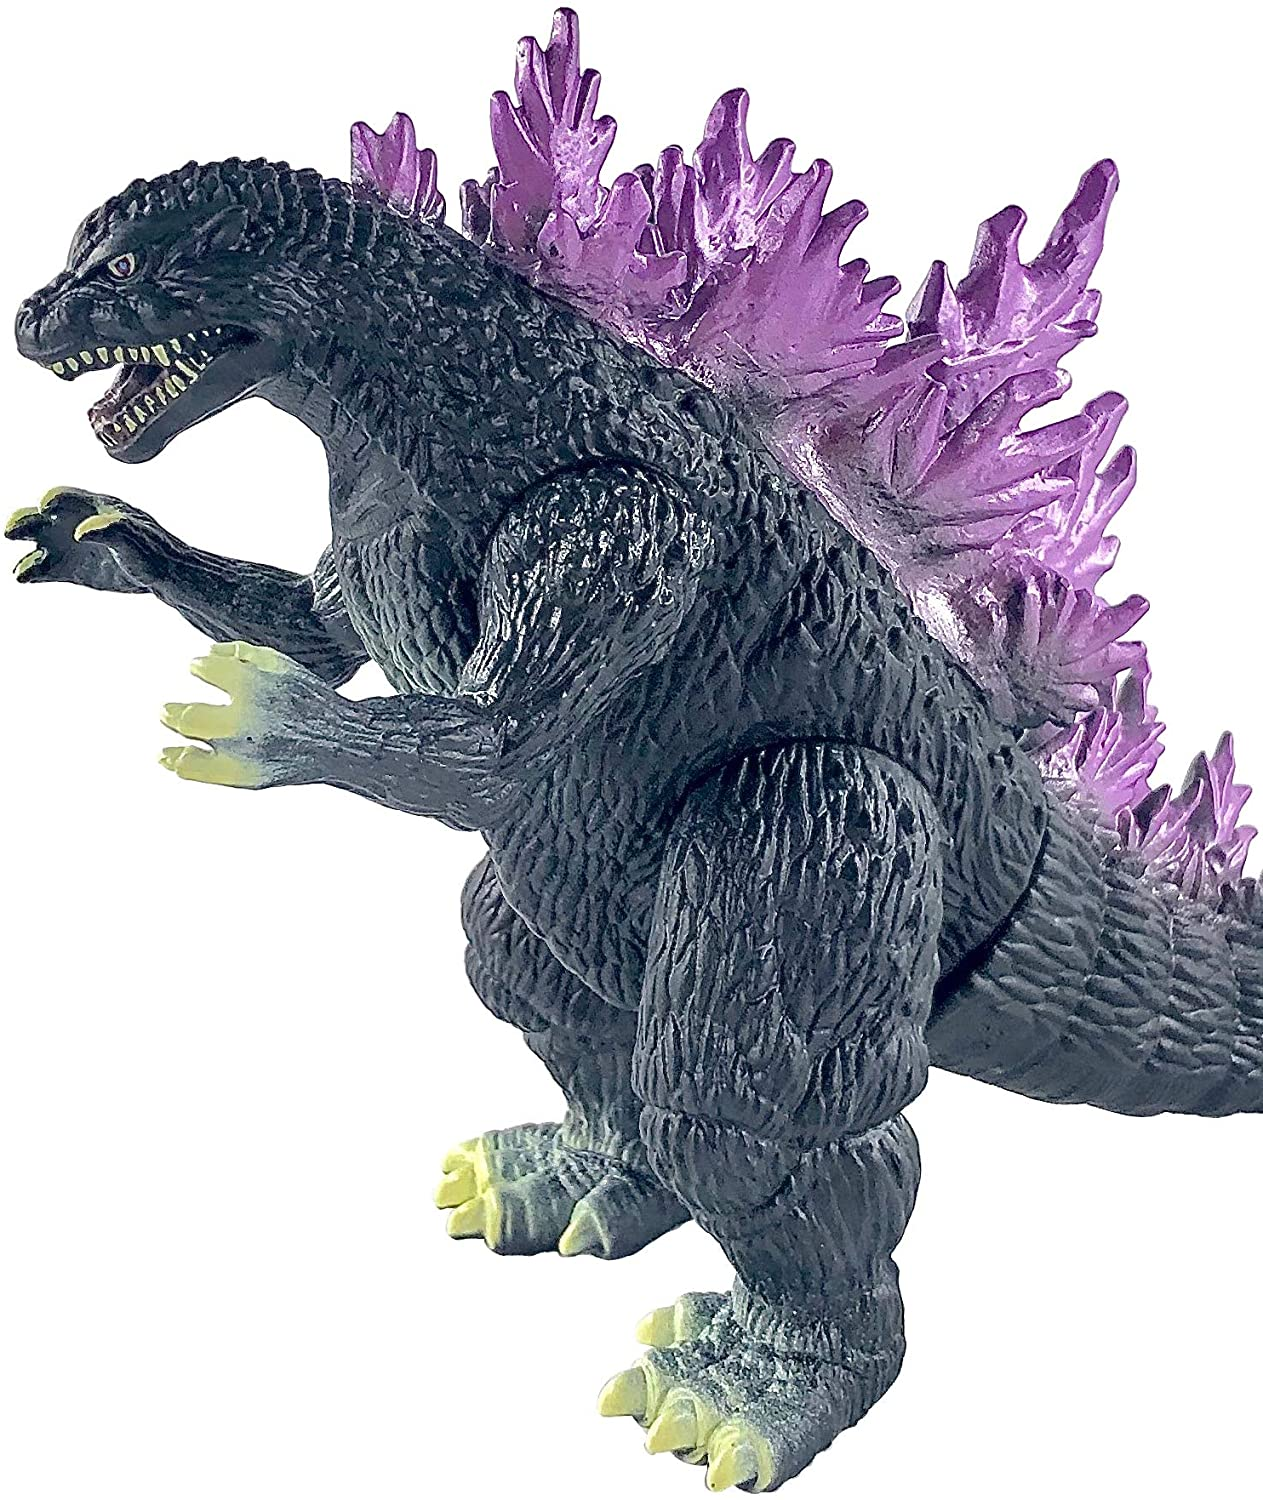 TwCare Godzilla Toy Action Figure